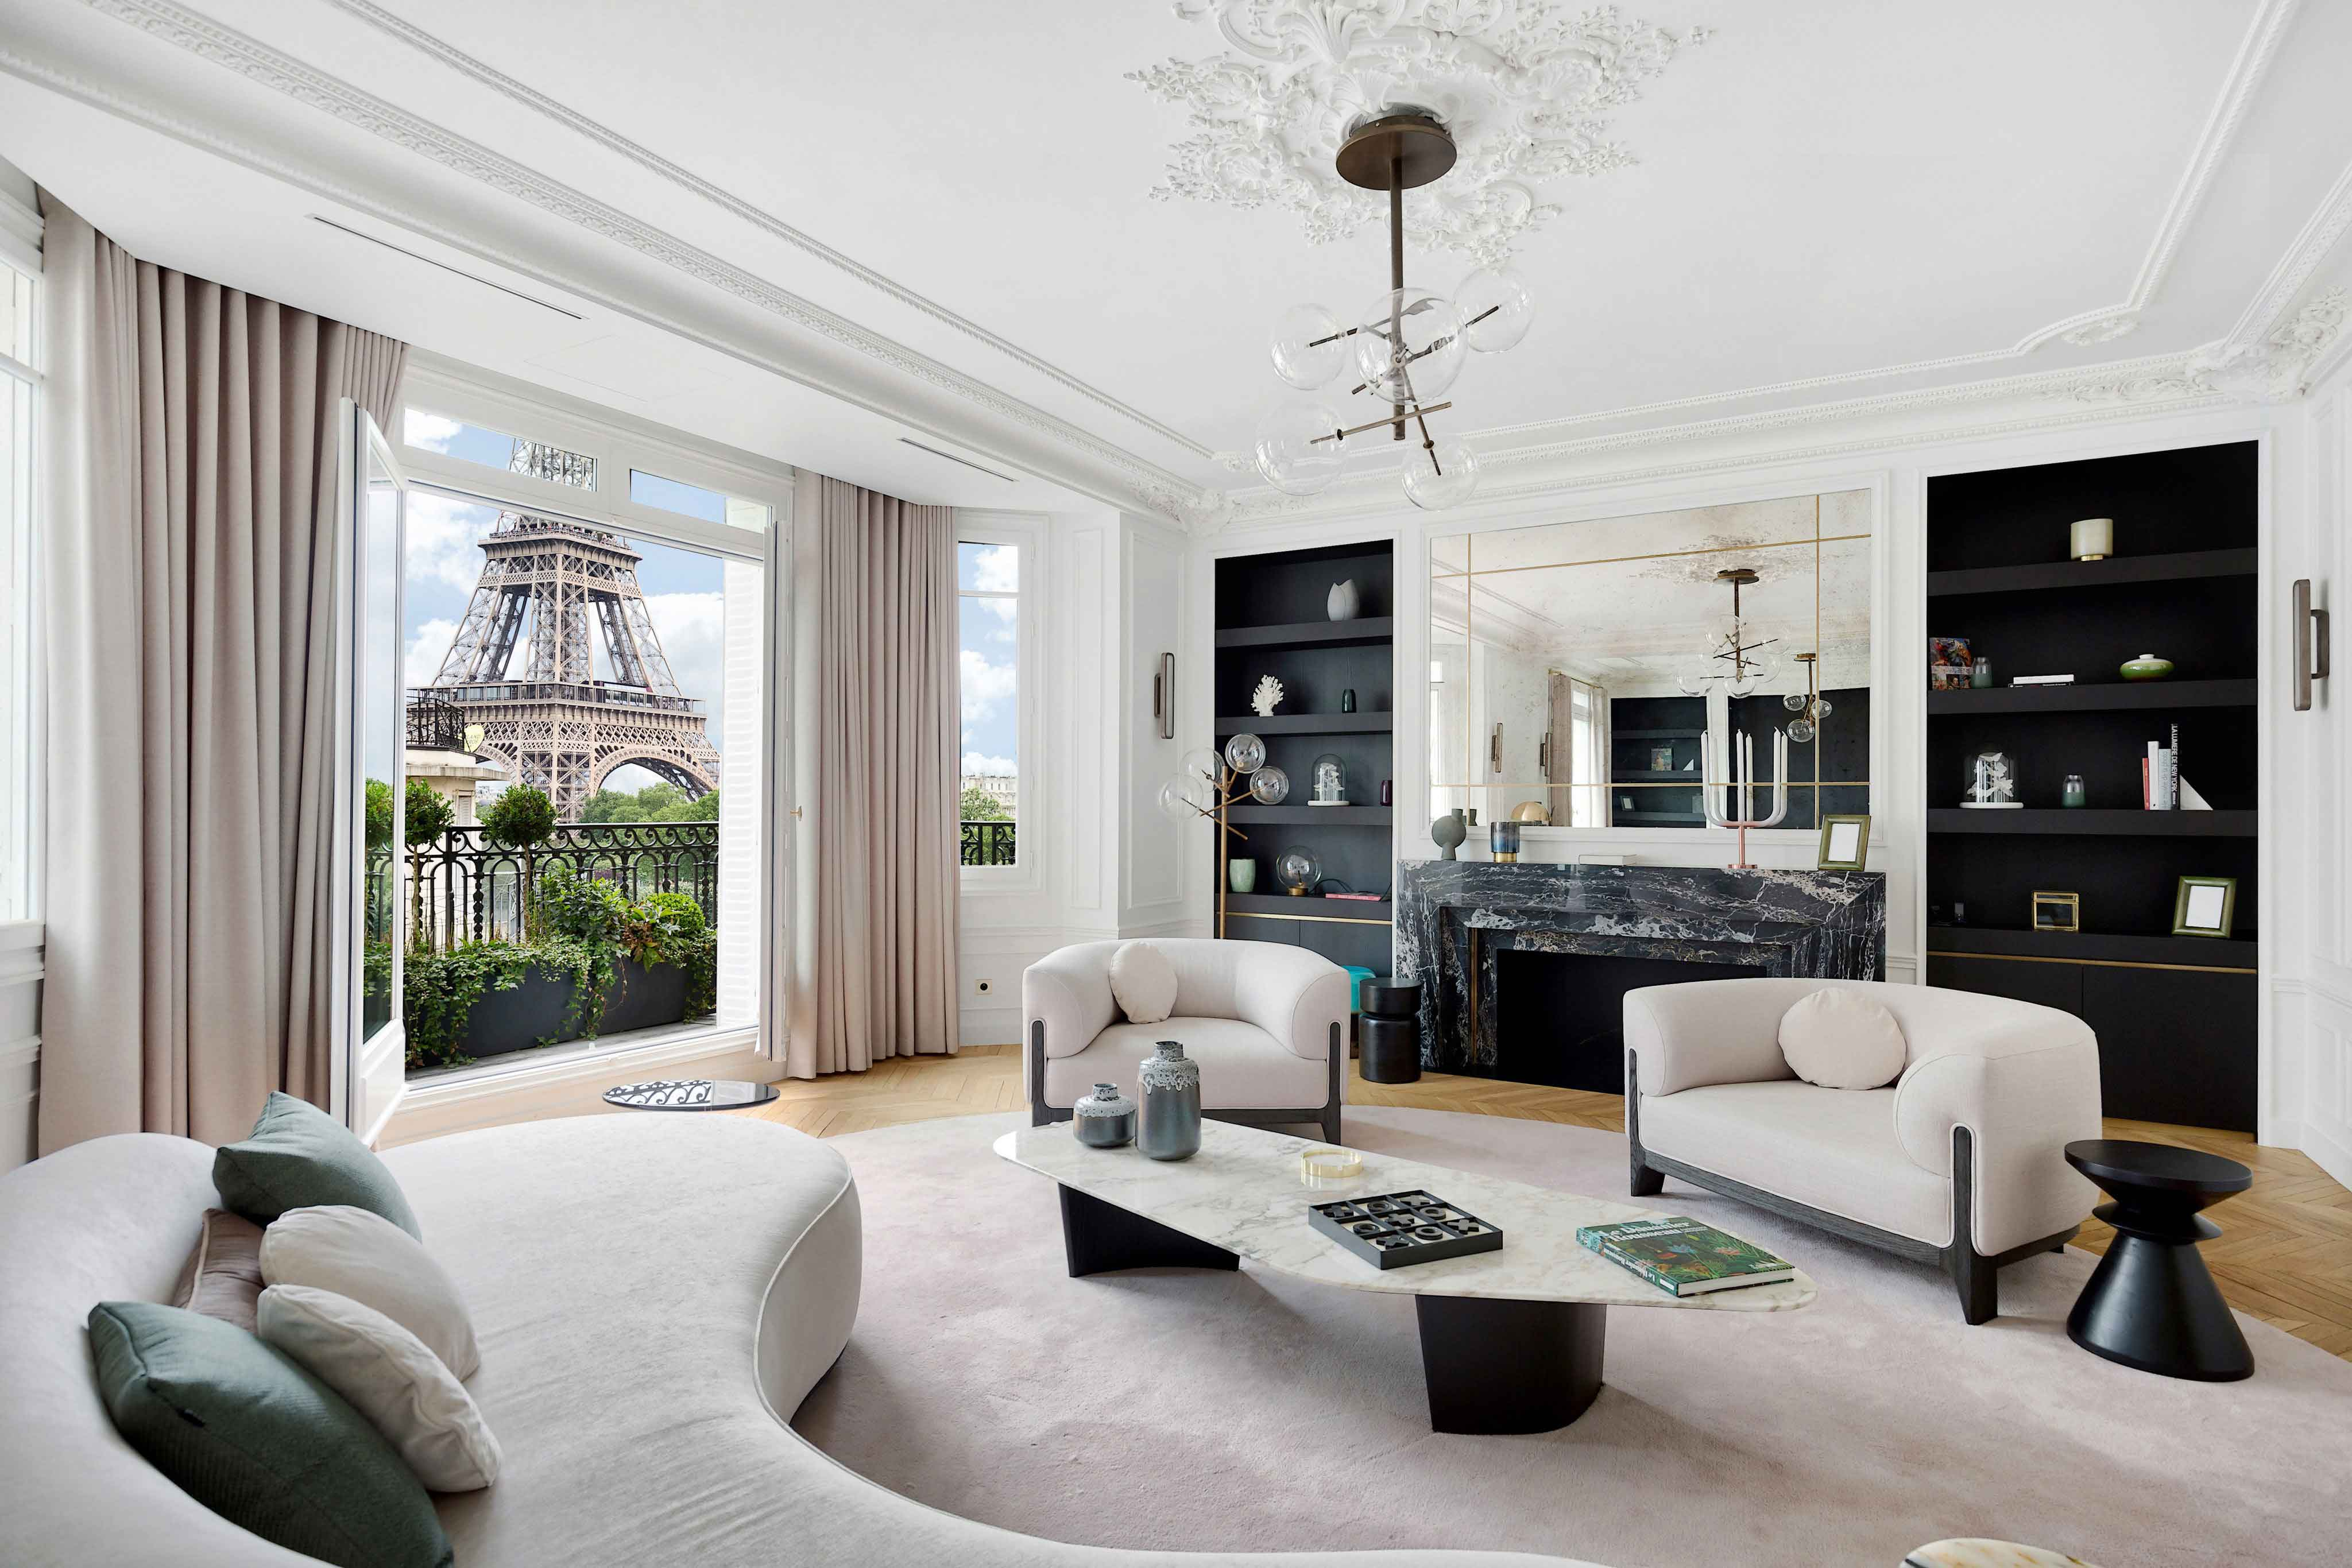 The Eiffel Tower is the dramatic backdrop to this chic apartment in the 16th arrondissement of Paris.